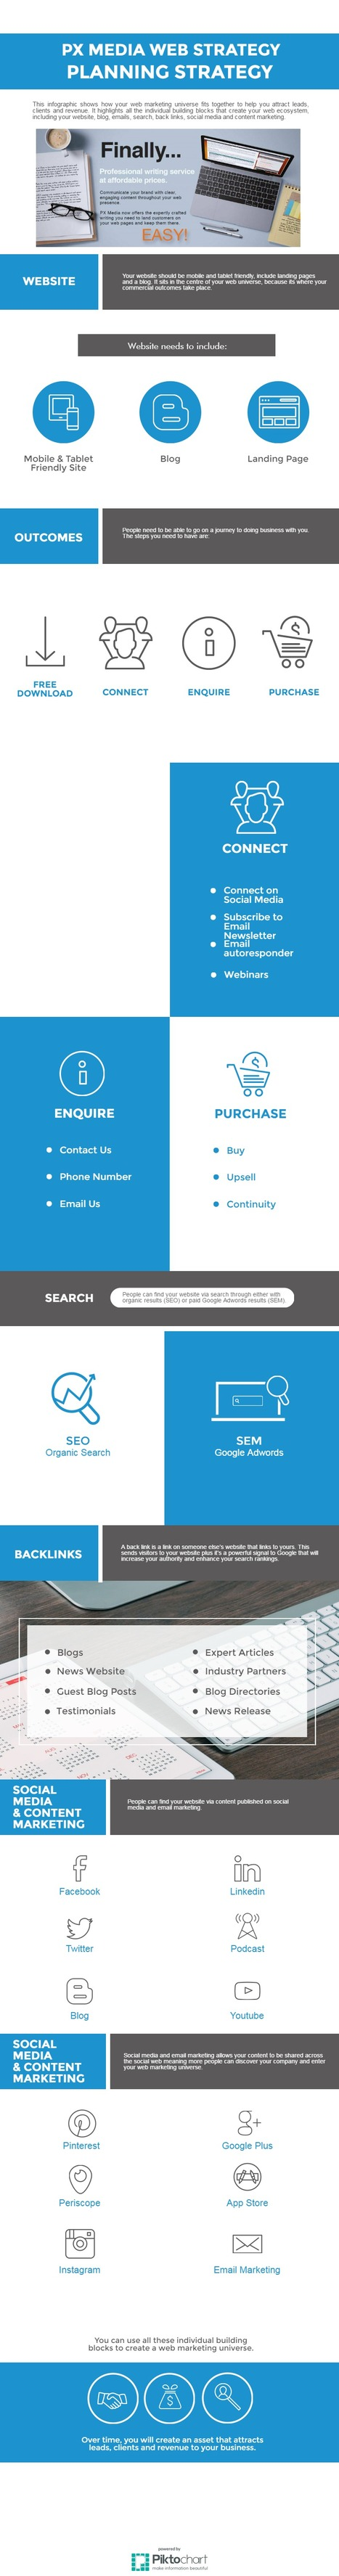 PX MEDIA WEB STRATEGY PLANNING STRATEGY | Web Design and SEO Company in Los Angeles | Scoop.it